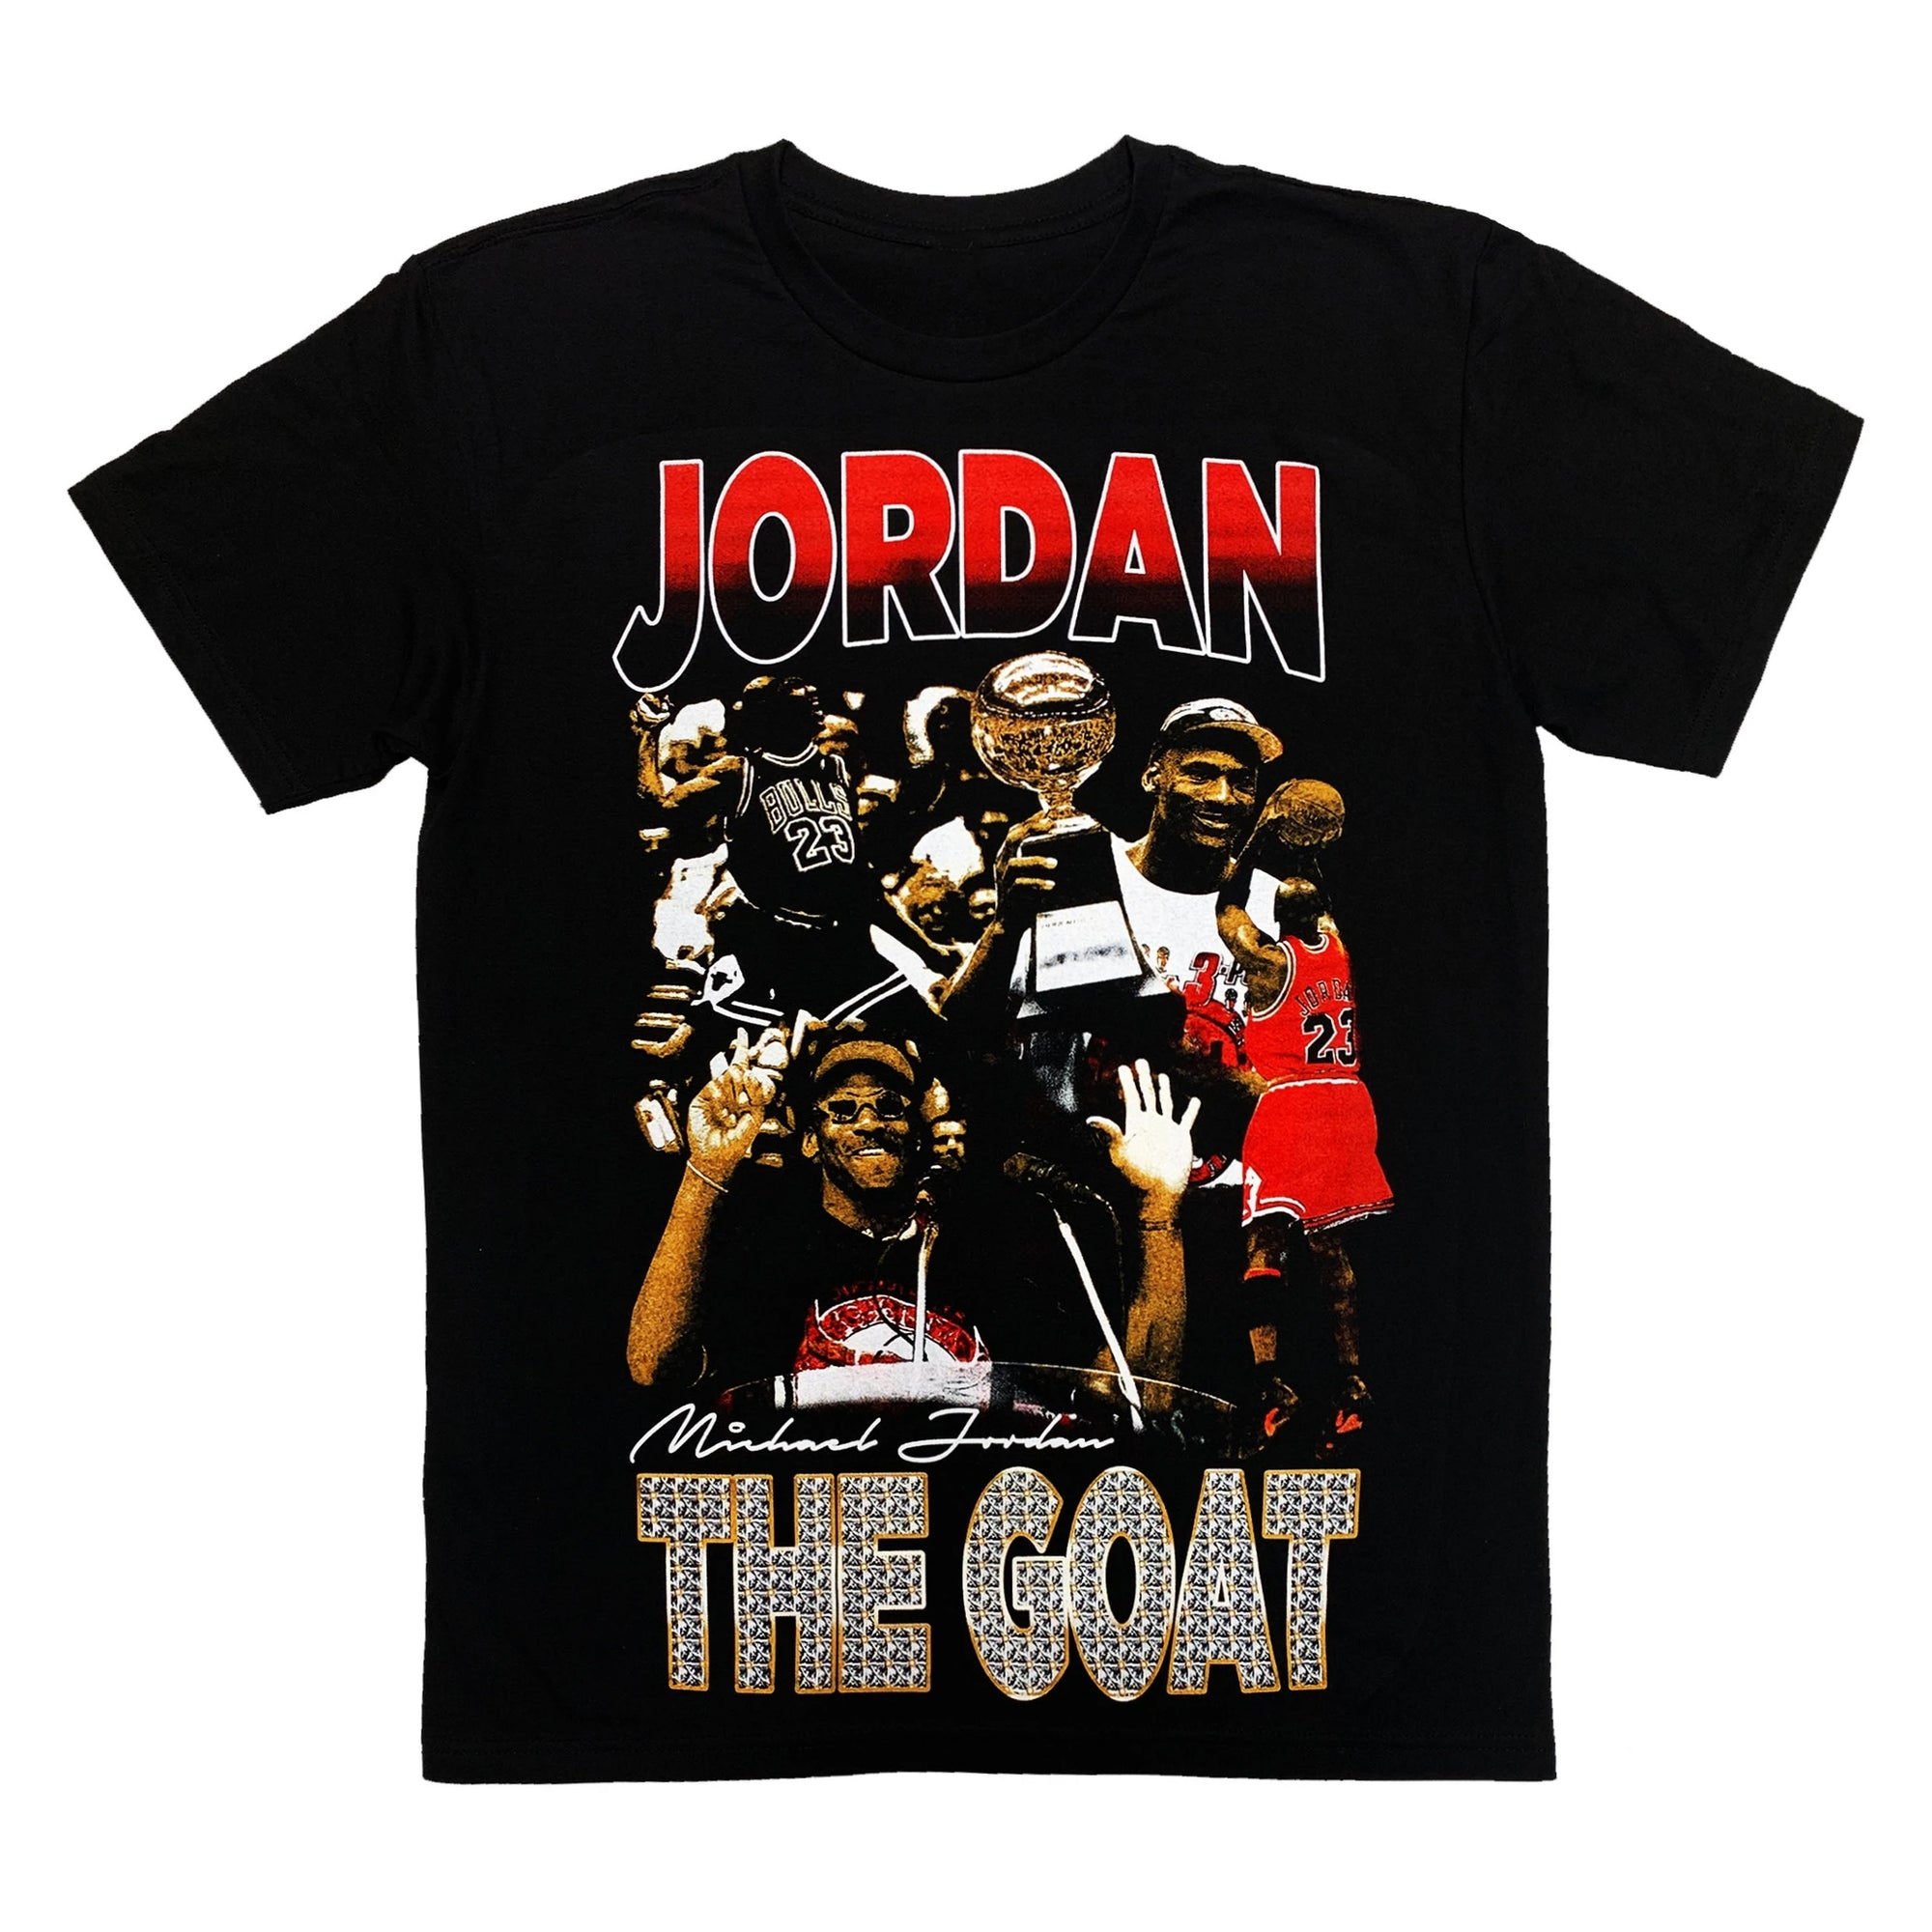 THE GOAT Vintage T-Shirt